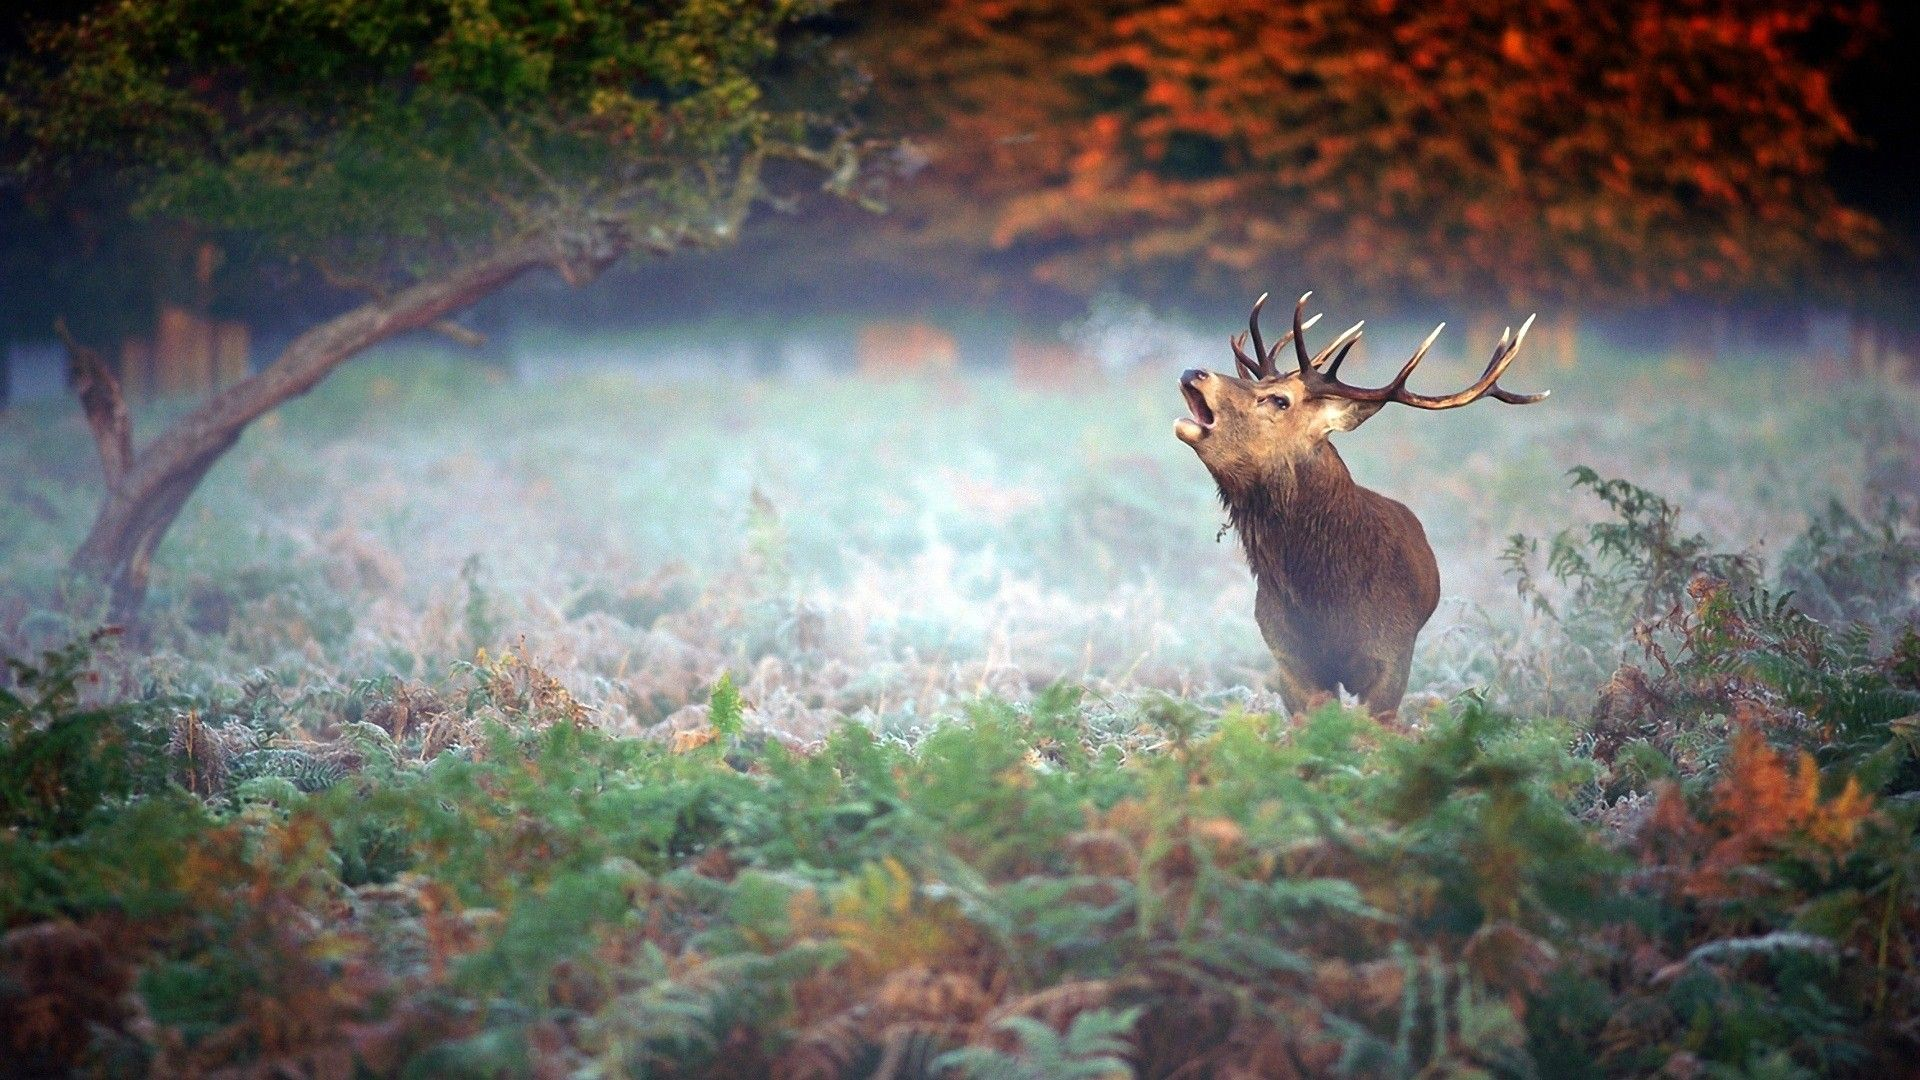 Deer Forest Nature Fog Hd Wallpaper